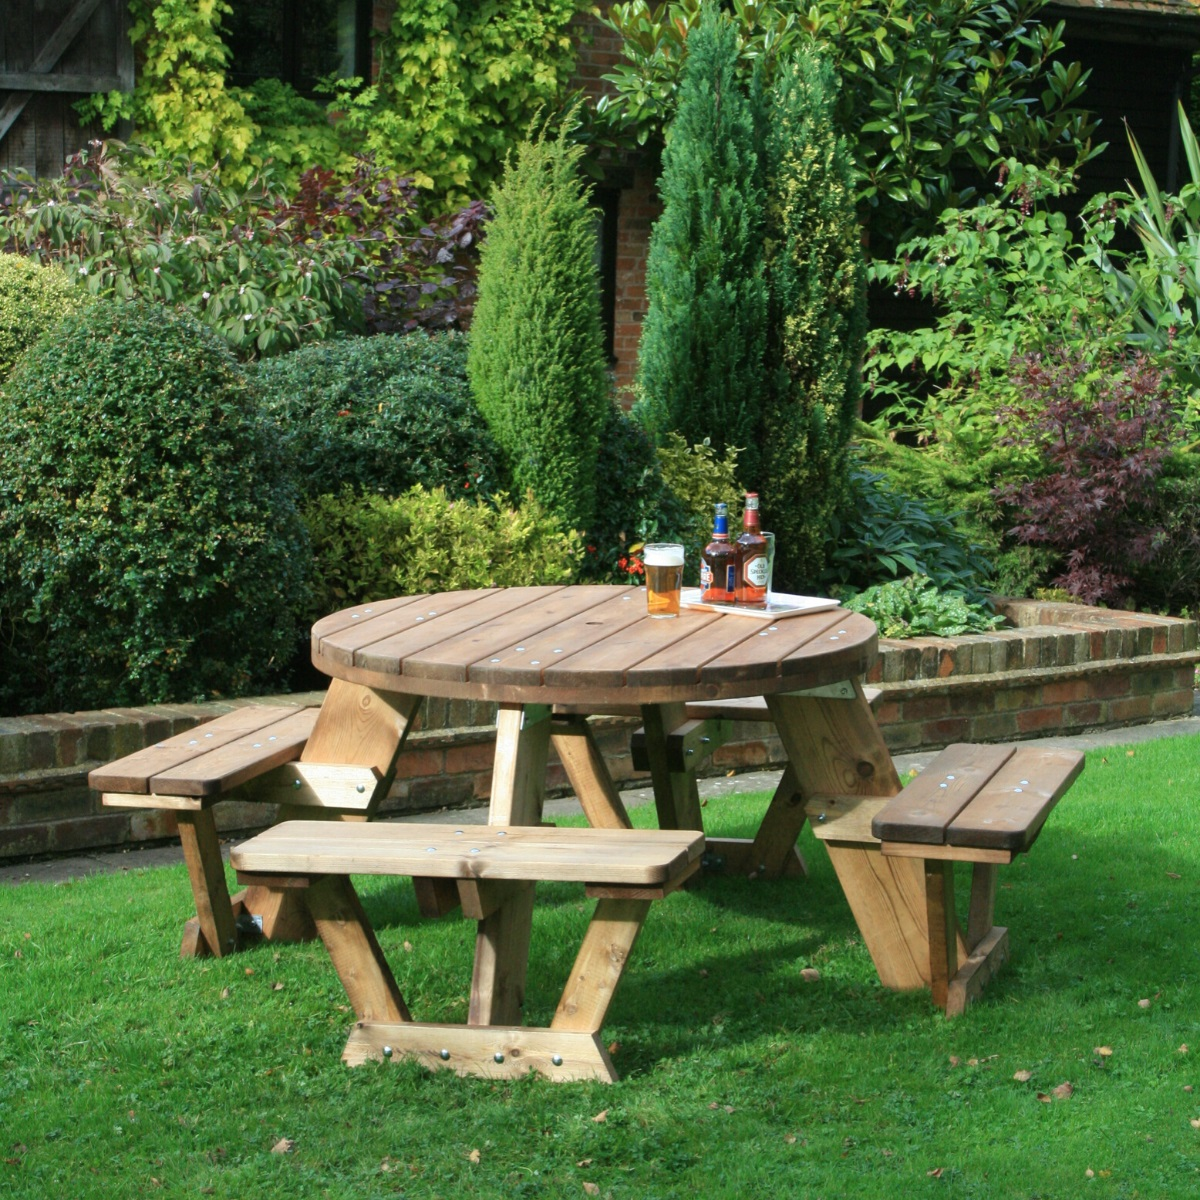 A circular wooden picnic table seating 8 people located on a lawn